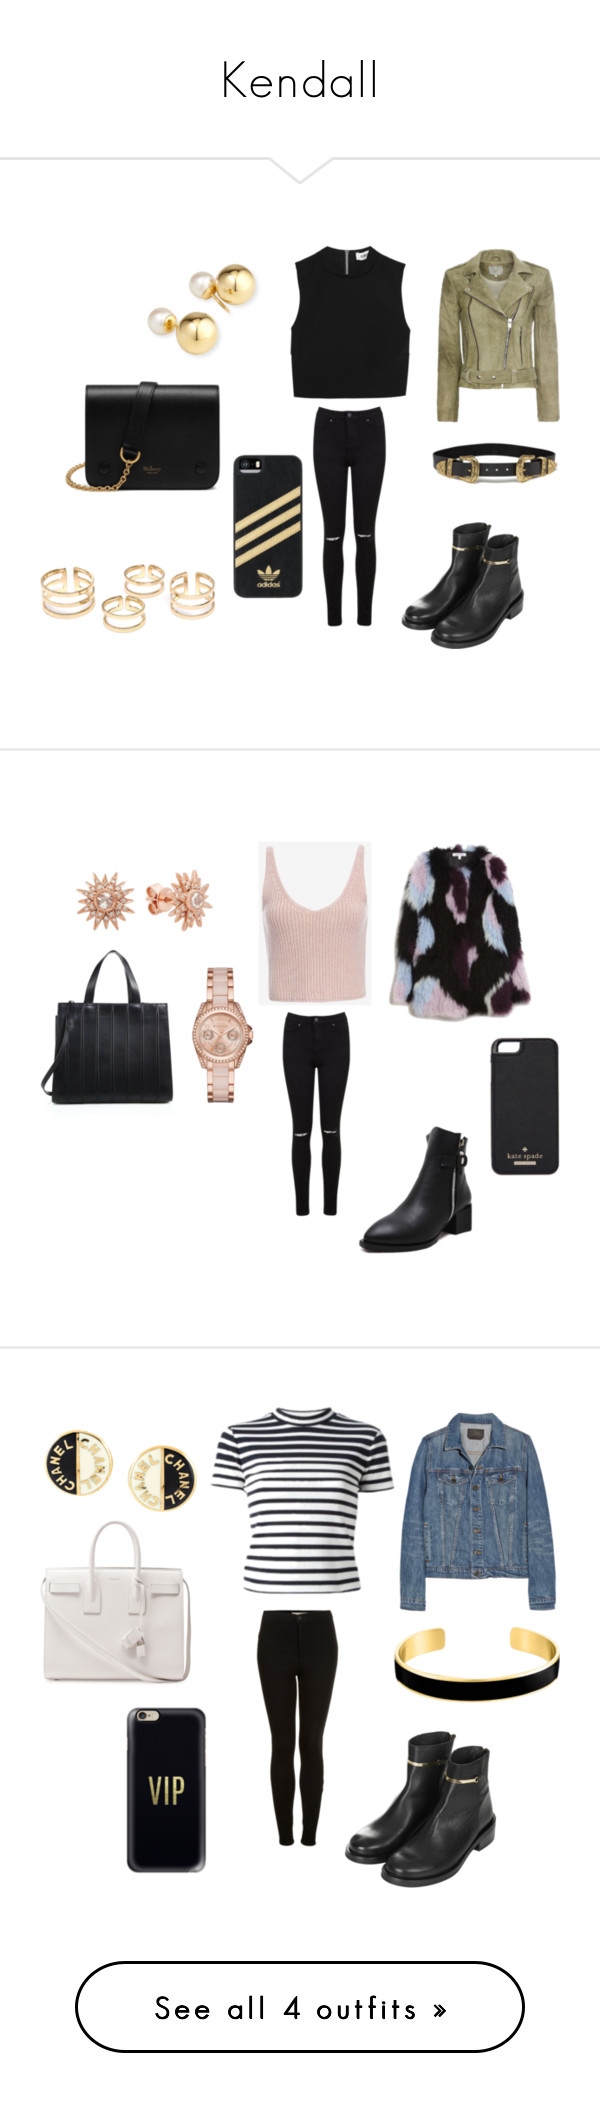 """""""Kendall"""" by model-squad ❤ liked on Polyvore featuring Elizabeth and James, IRO, Miss Selfridge, Topshop, B-Low the Belt, Mulberry, adidas, Exclusive for Intermix, Michael Kors and MaxMara"""